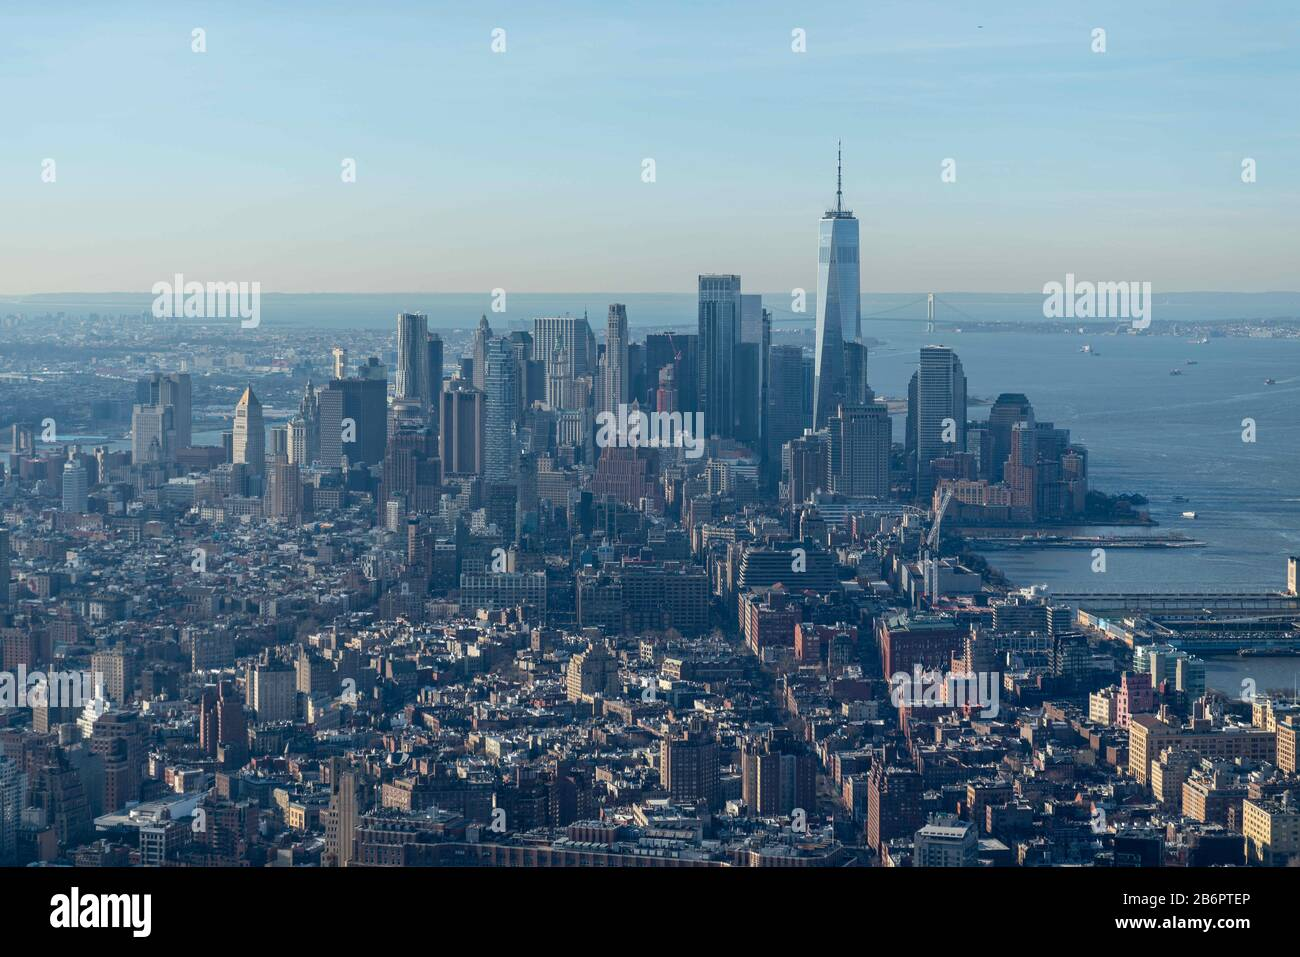 New York, USA. 11th Mar, 2020. New York, New York, U.S.: Edge, located in the heart of Hudson Yards, officially opens to the public and offers a 360 degrees views from the tip of Central Park to the Statue of Liberty. Credit: Corine Sciboz/ZUMA Wire/Alamy Live News Stock Photo